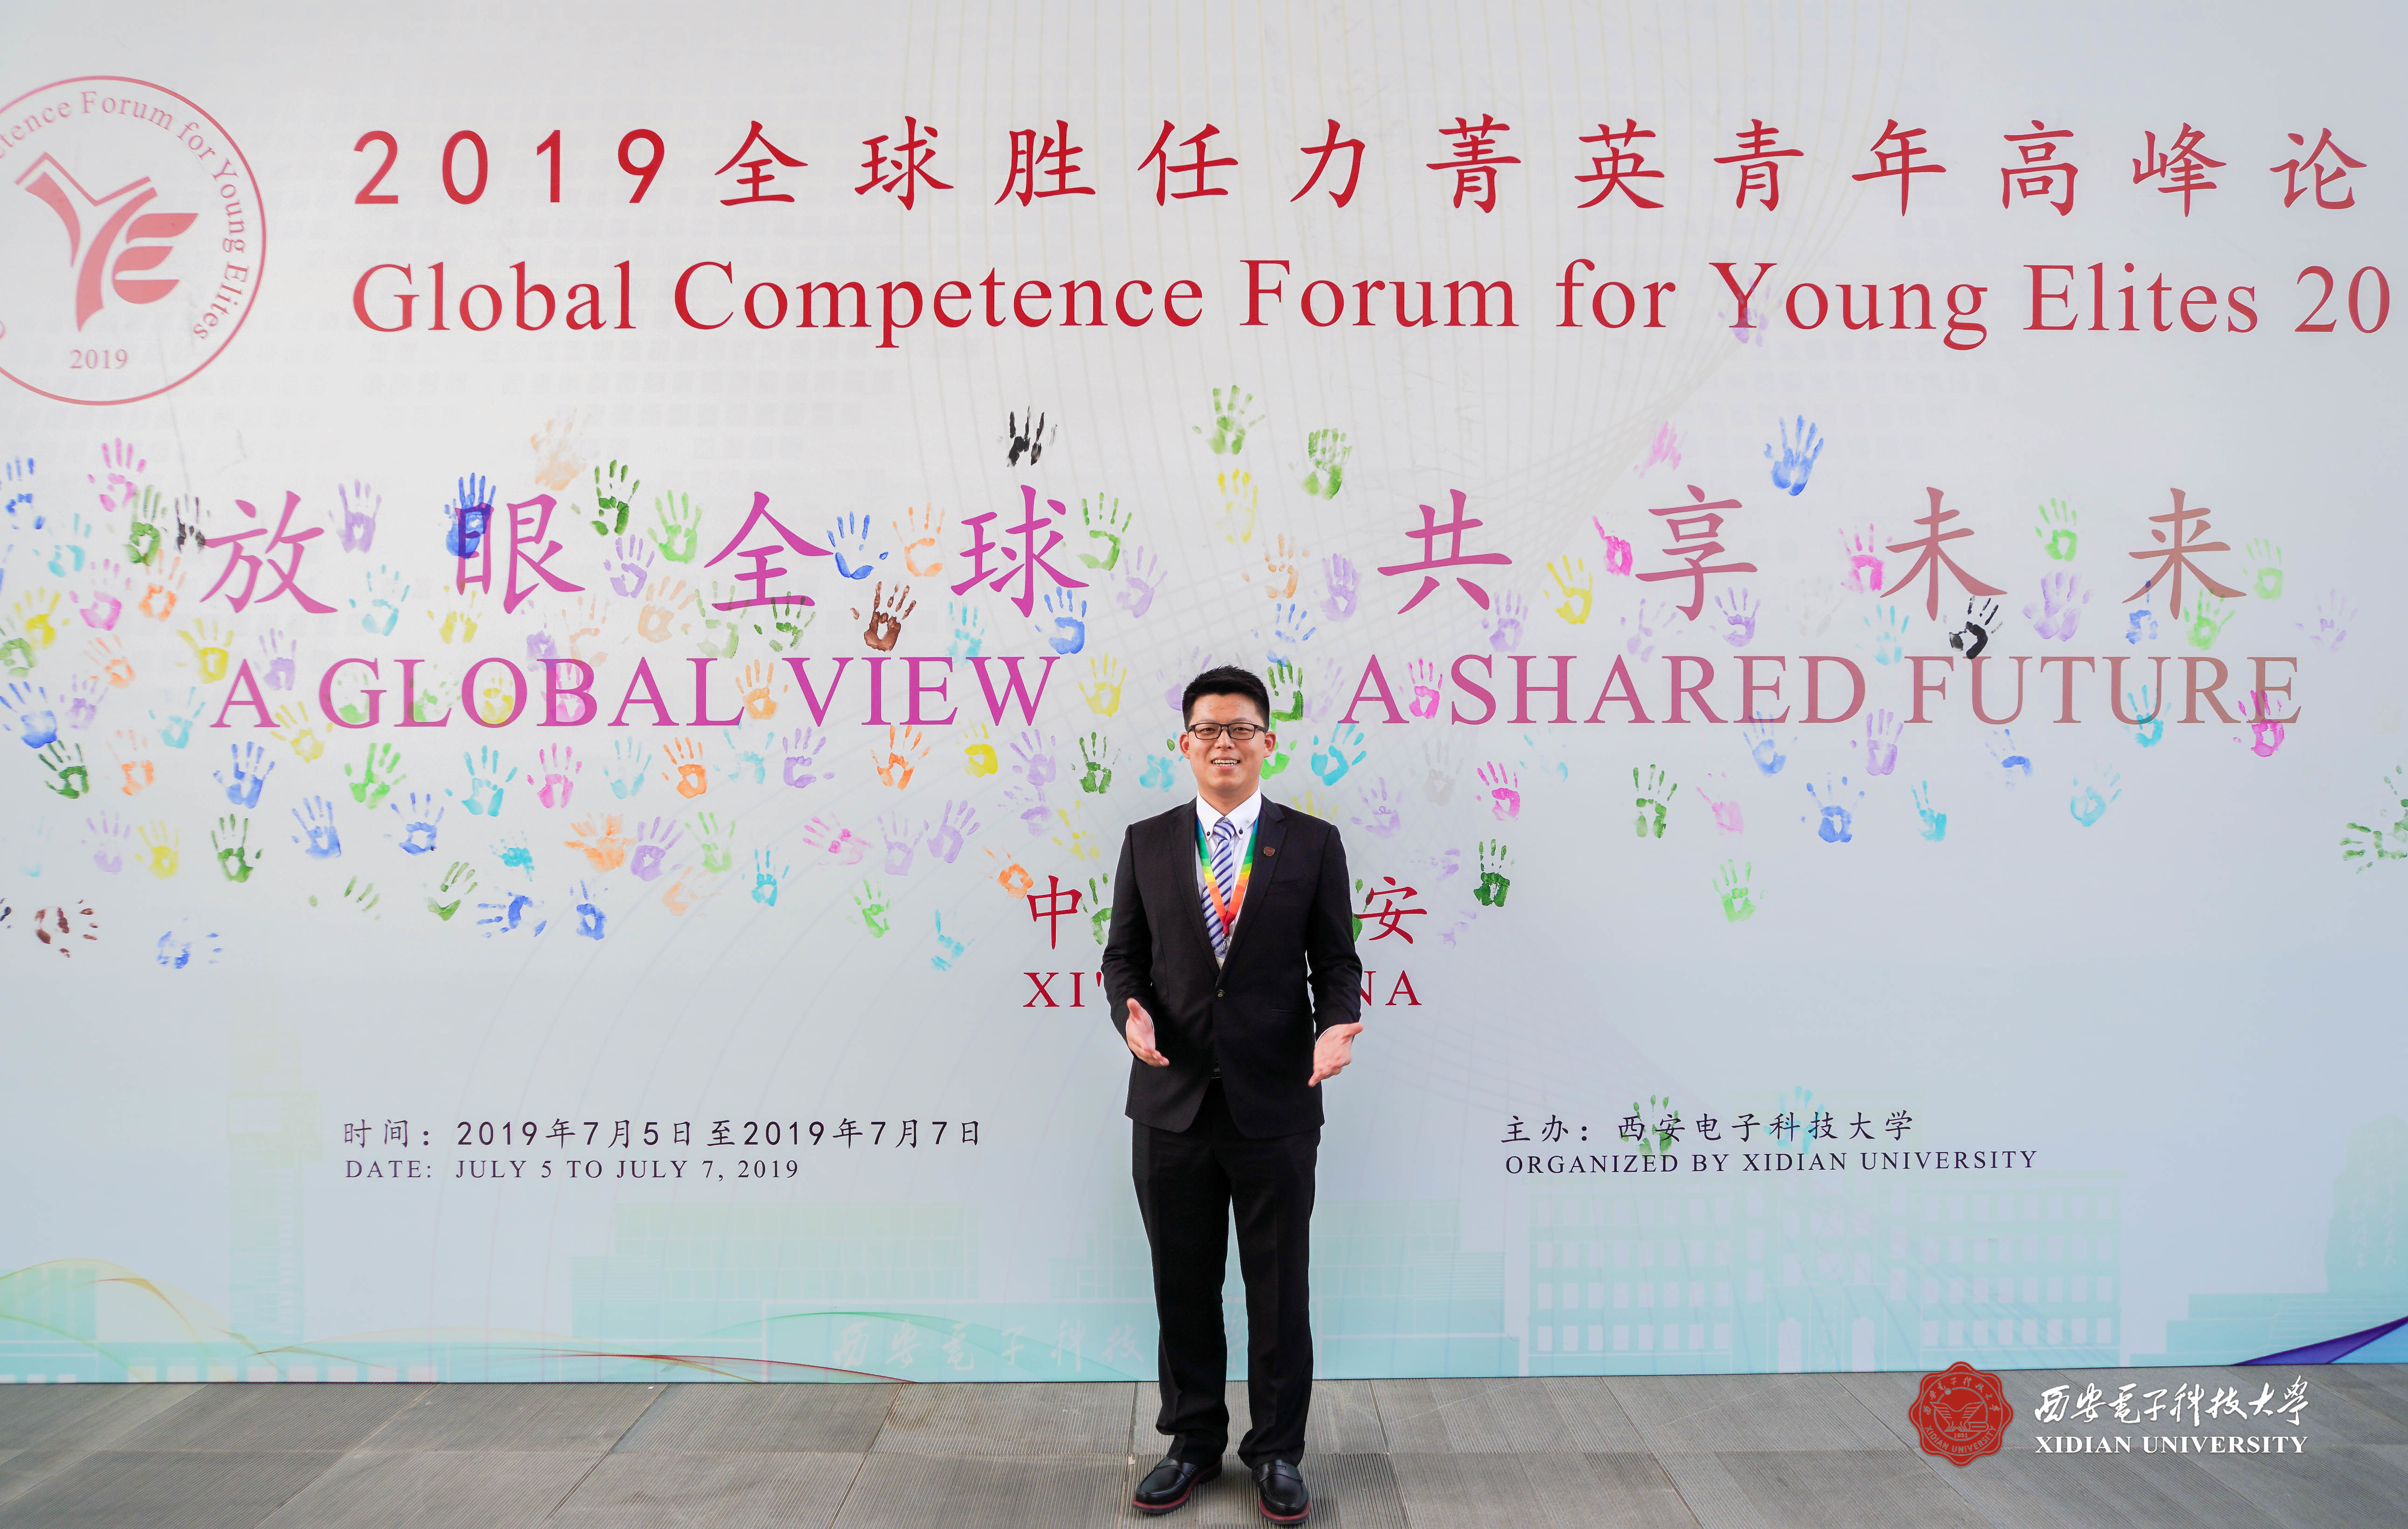 Allen Sun poses in front of a large poster about the Forum.